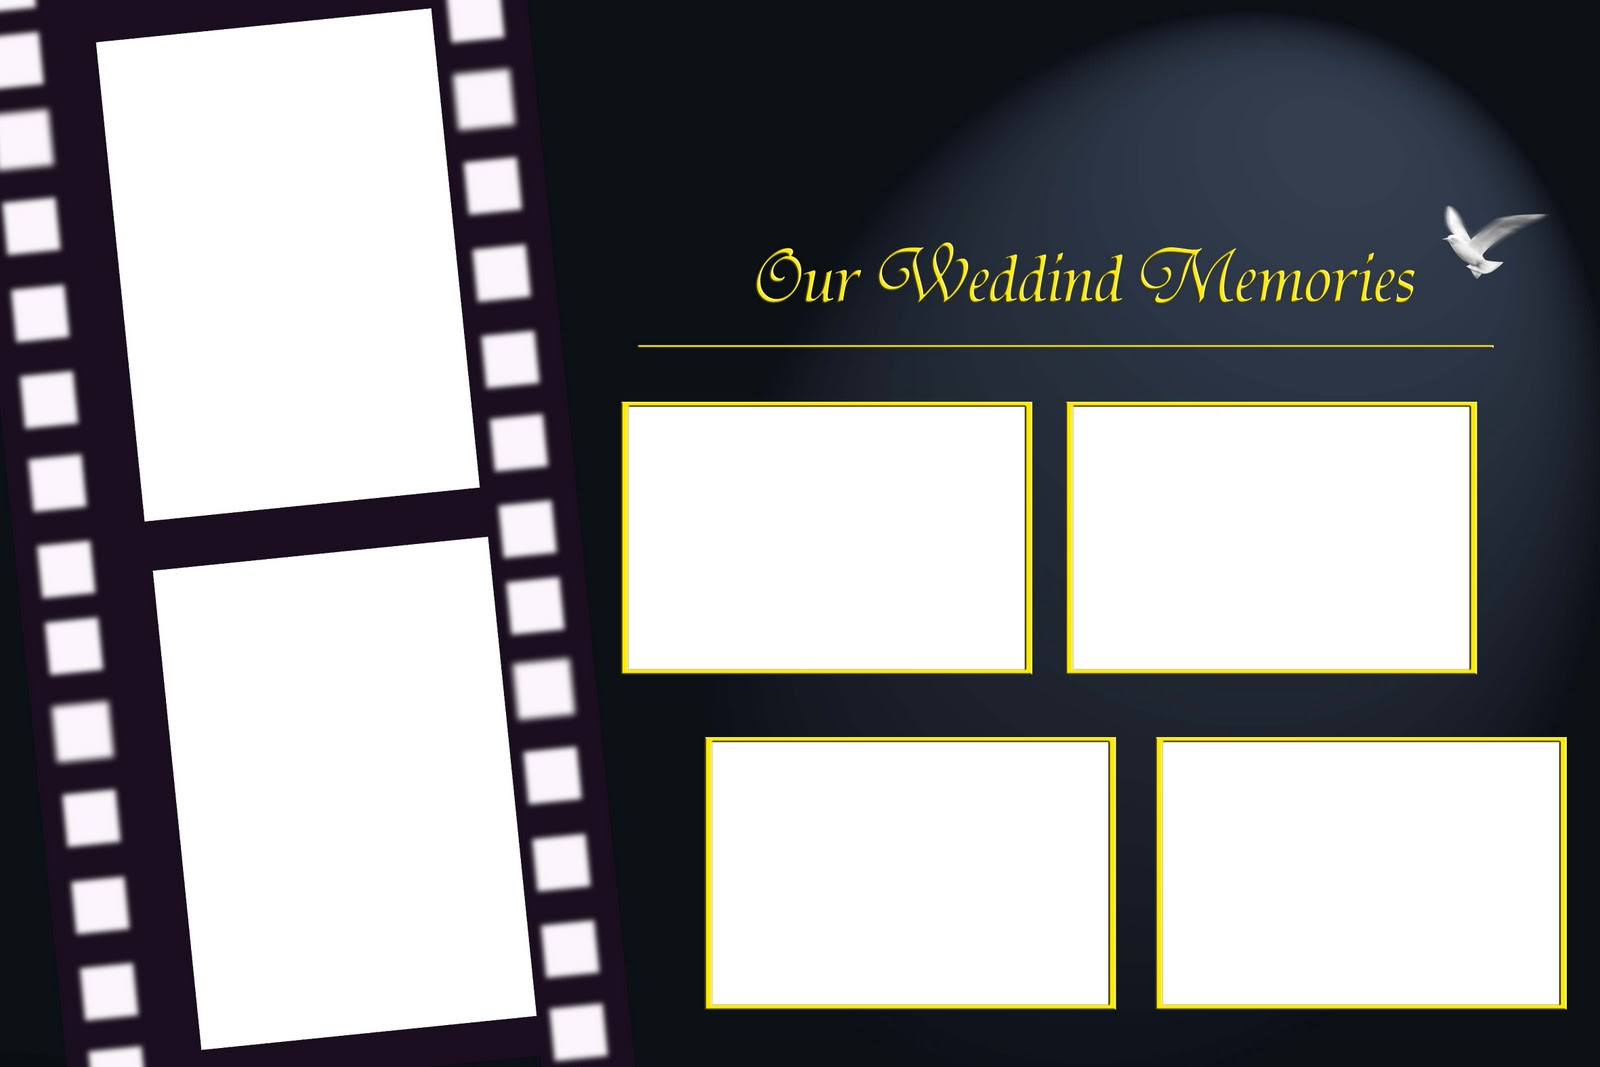 Wedding Template Design Images